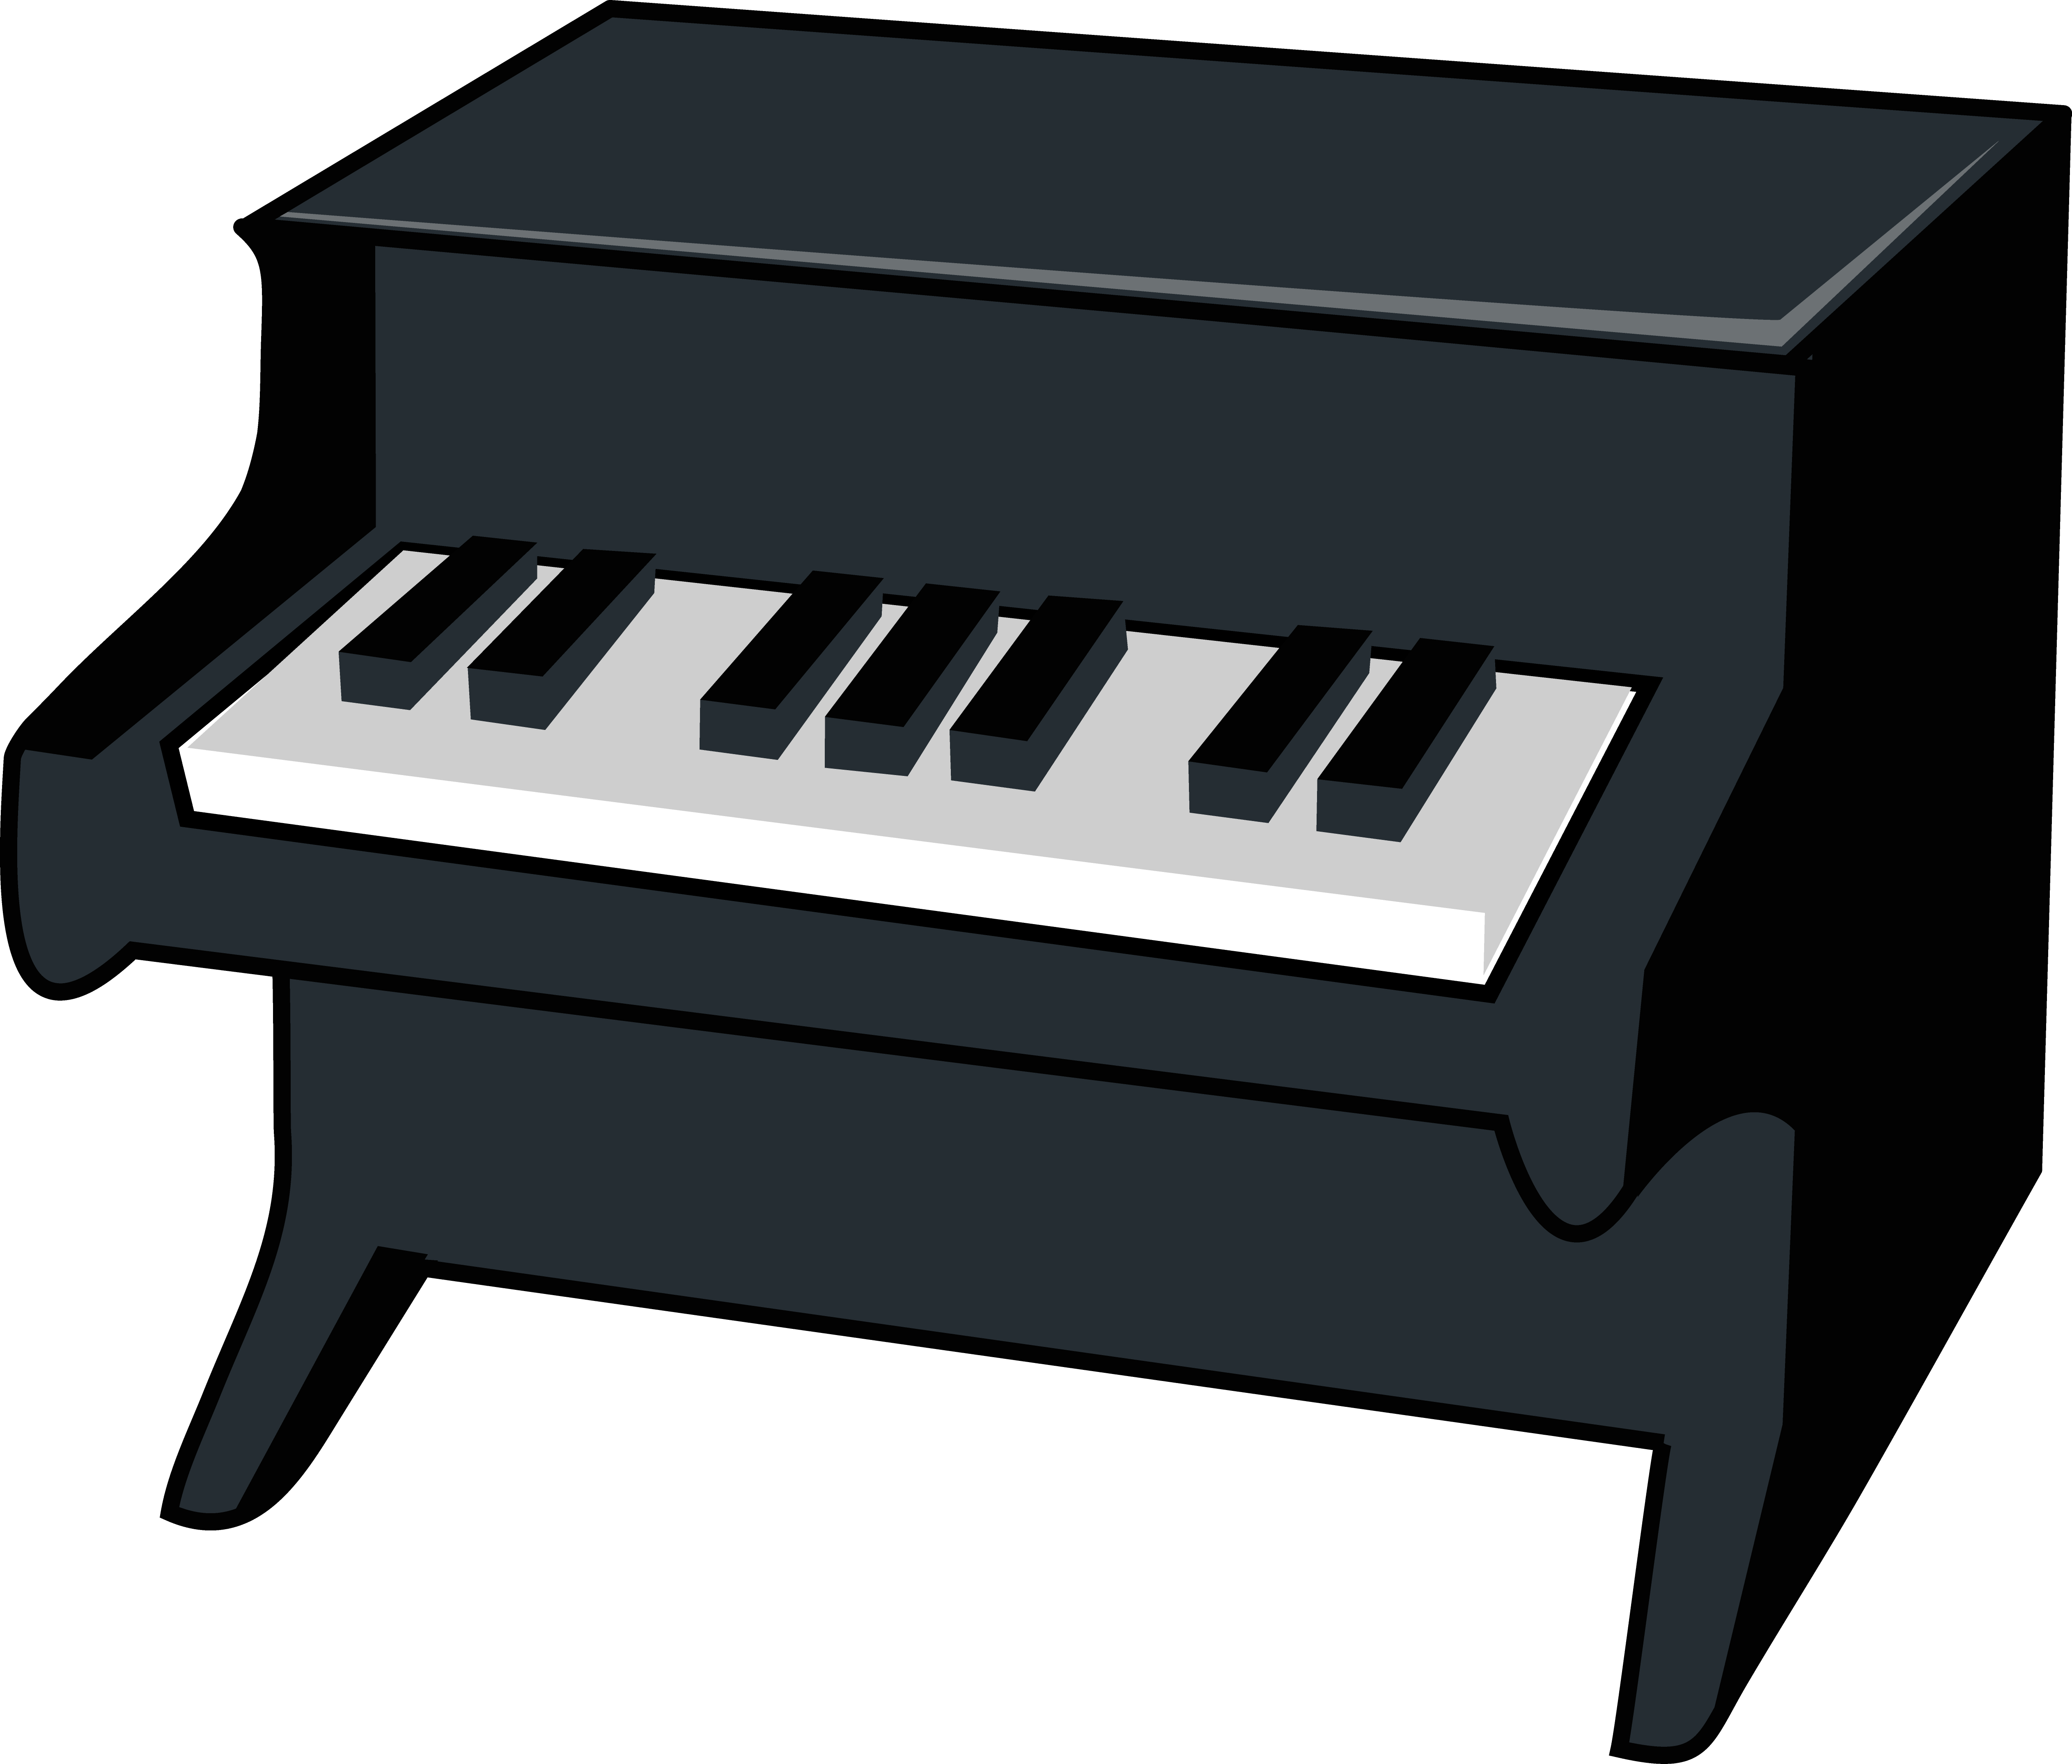 5047x4297 Miniature Piano Vector Illustration